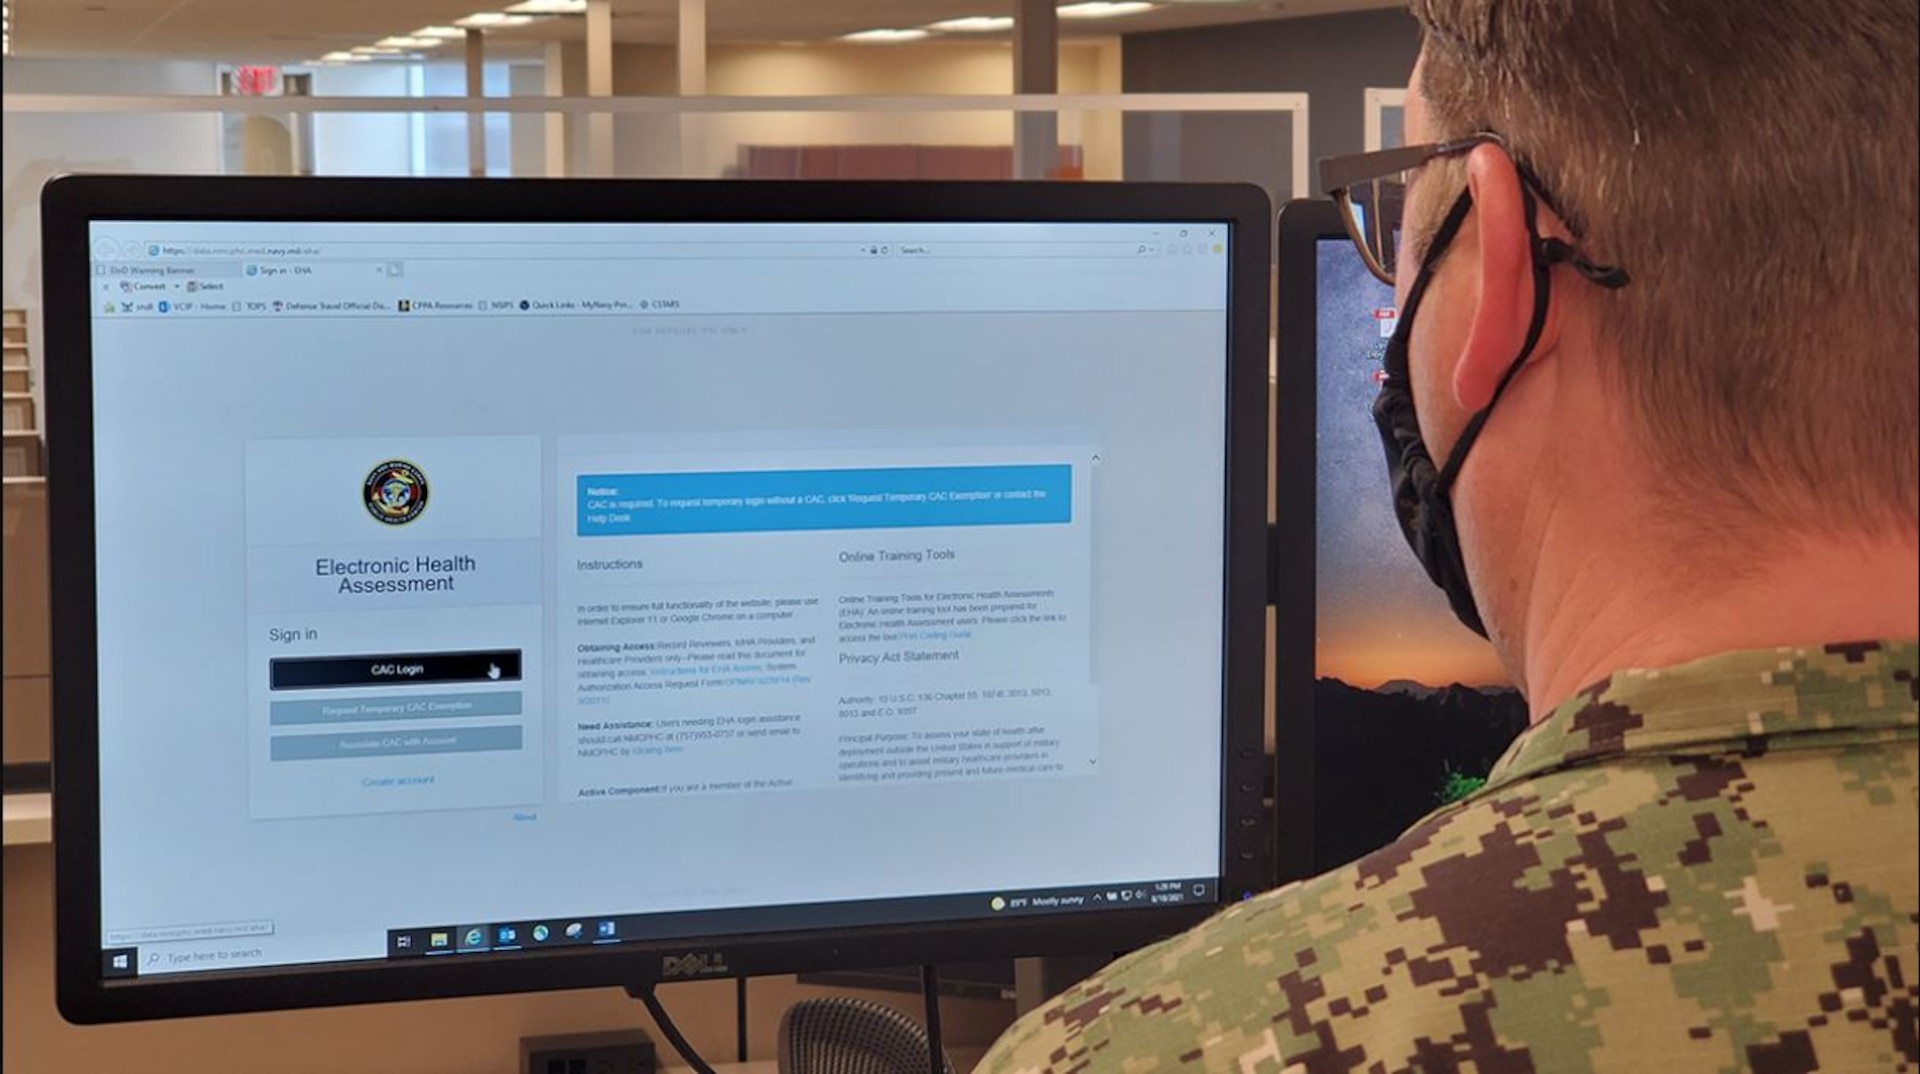 Accessing and completing a Periodic Health Assessment (PHA) or any Deployment Related Health Assessment (DRHA) is now easier with two websites combined into one.